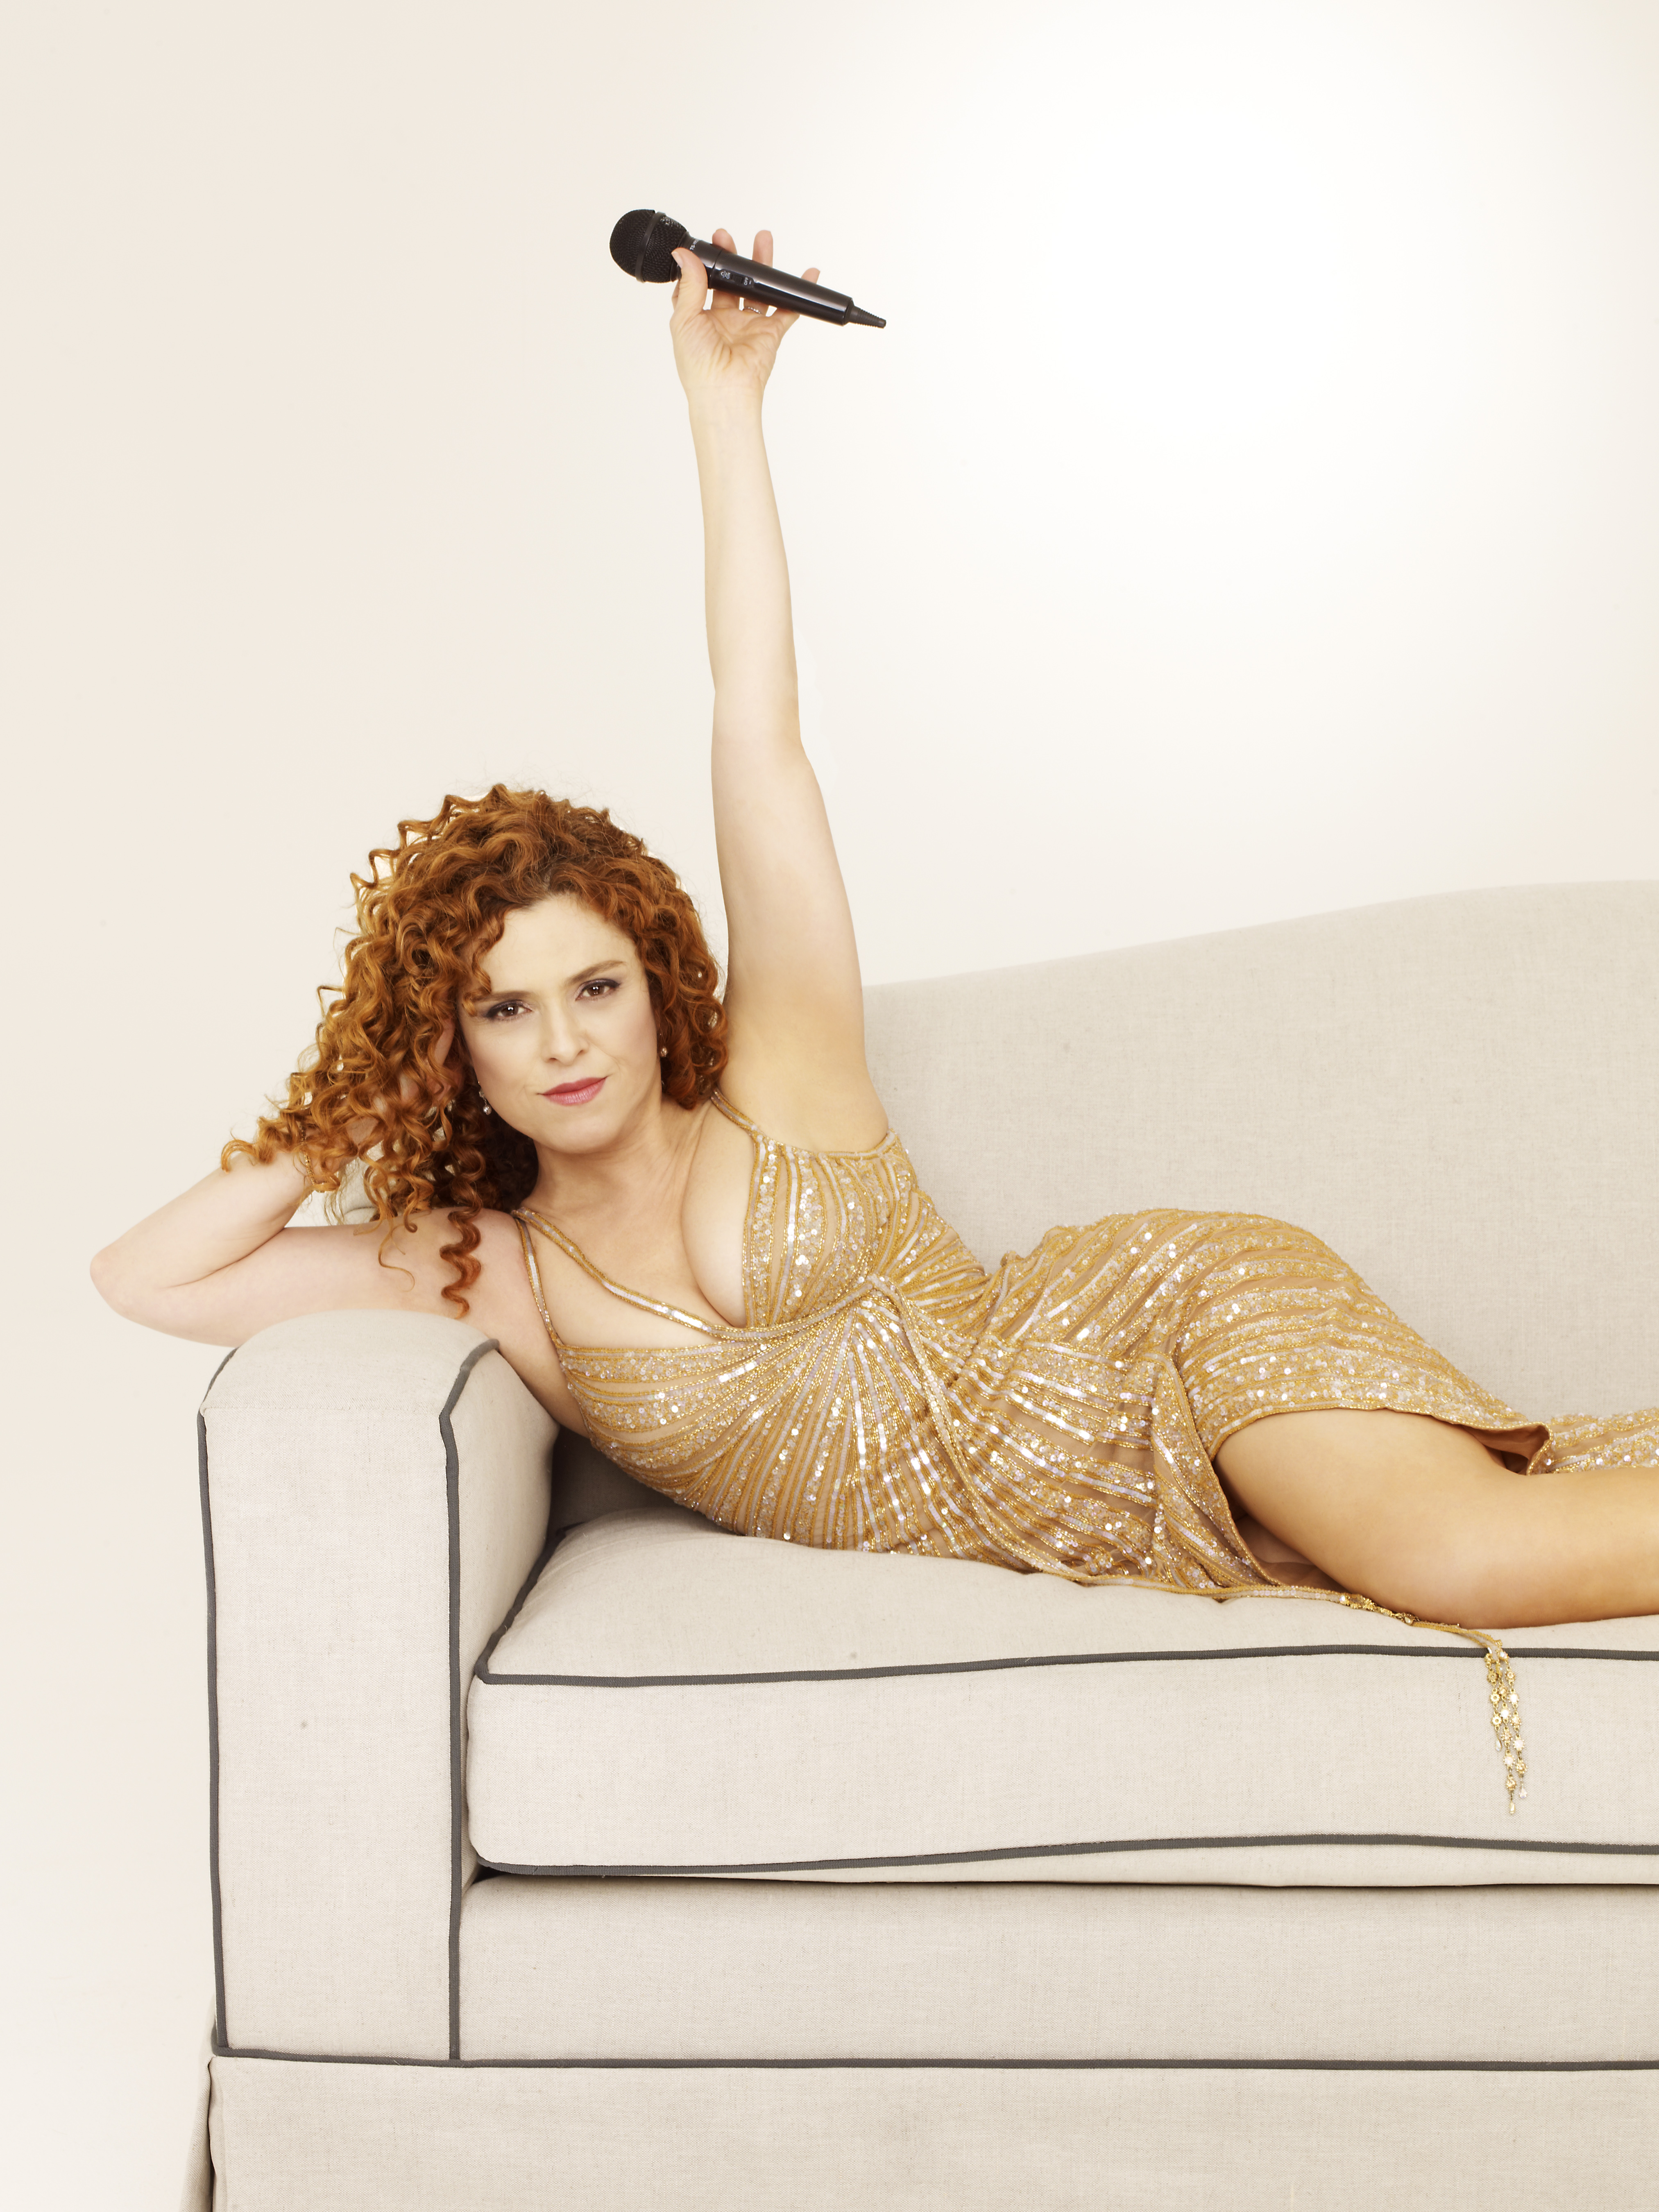 bernadette peters young